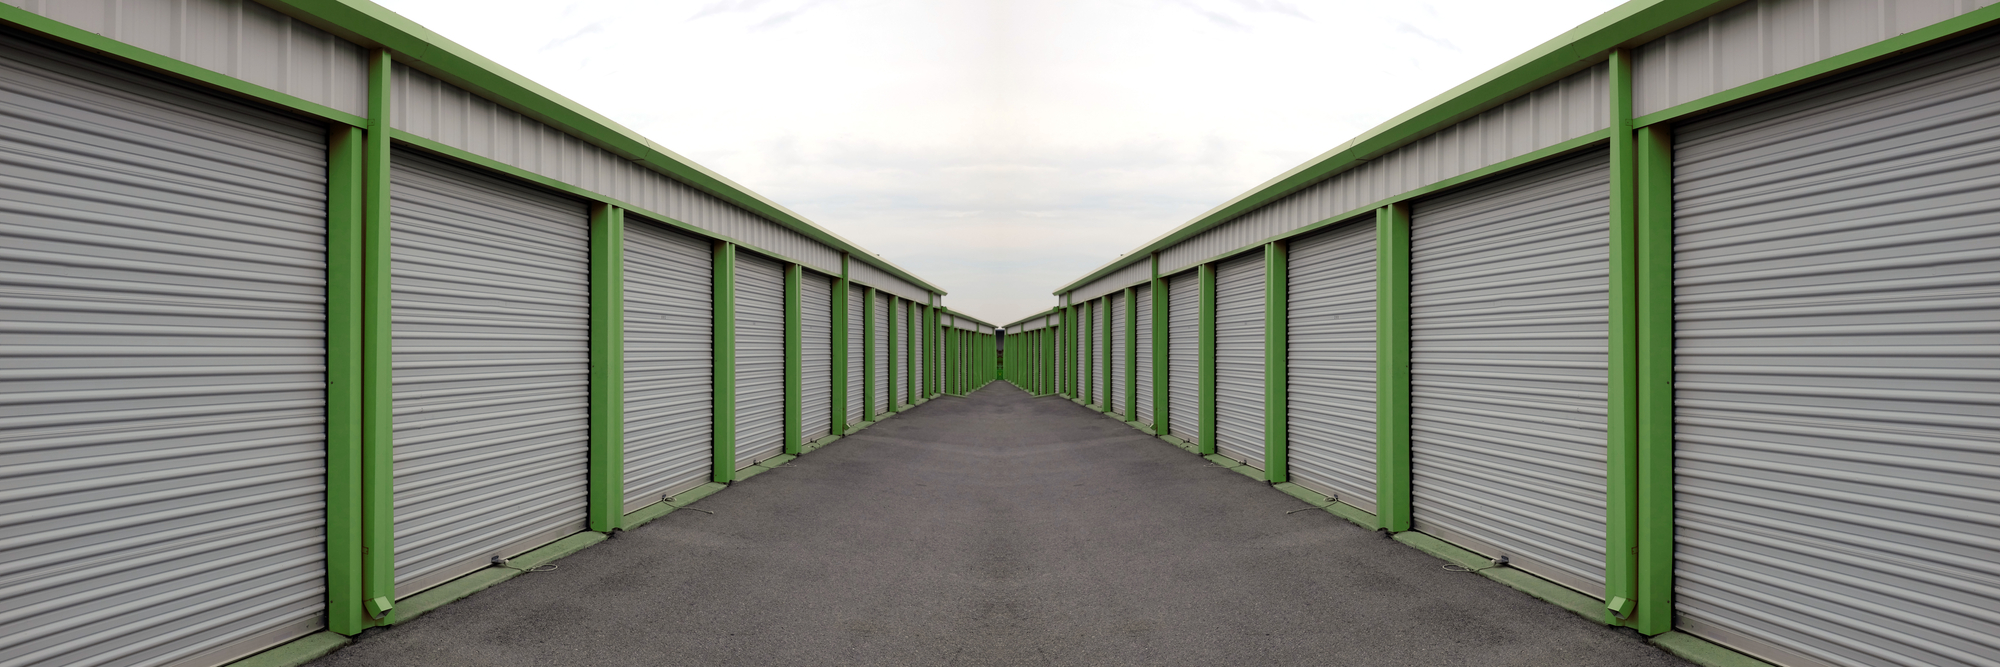 Storage units in two rows